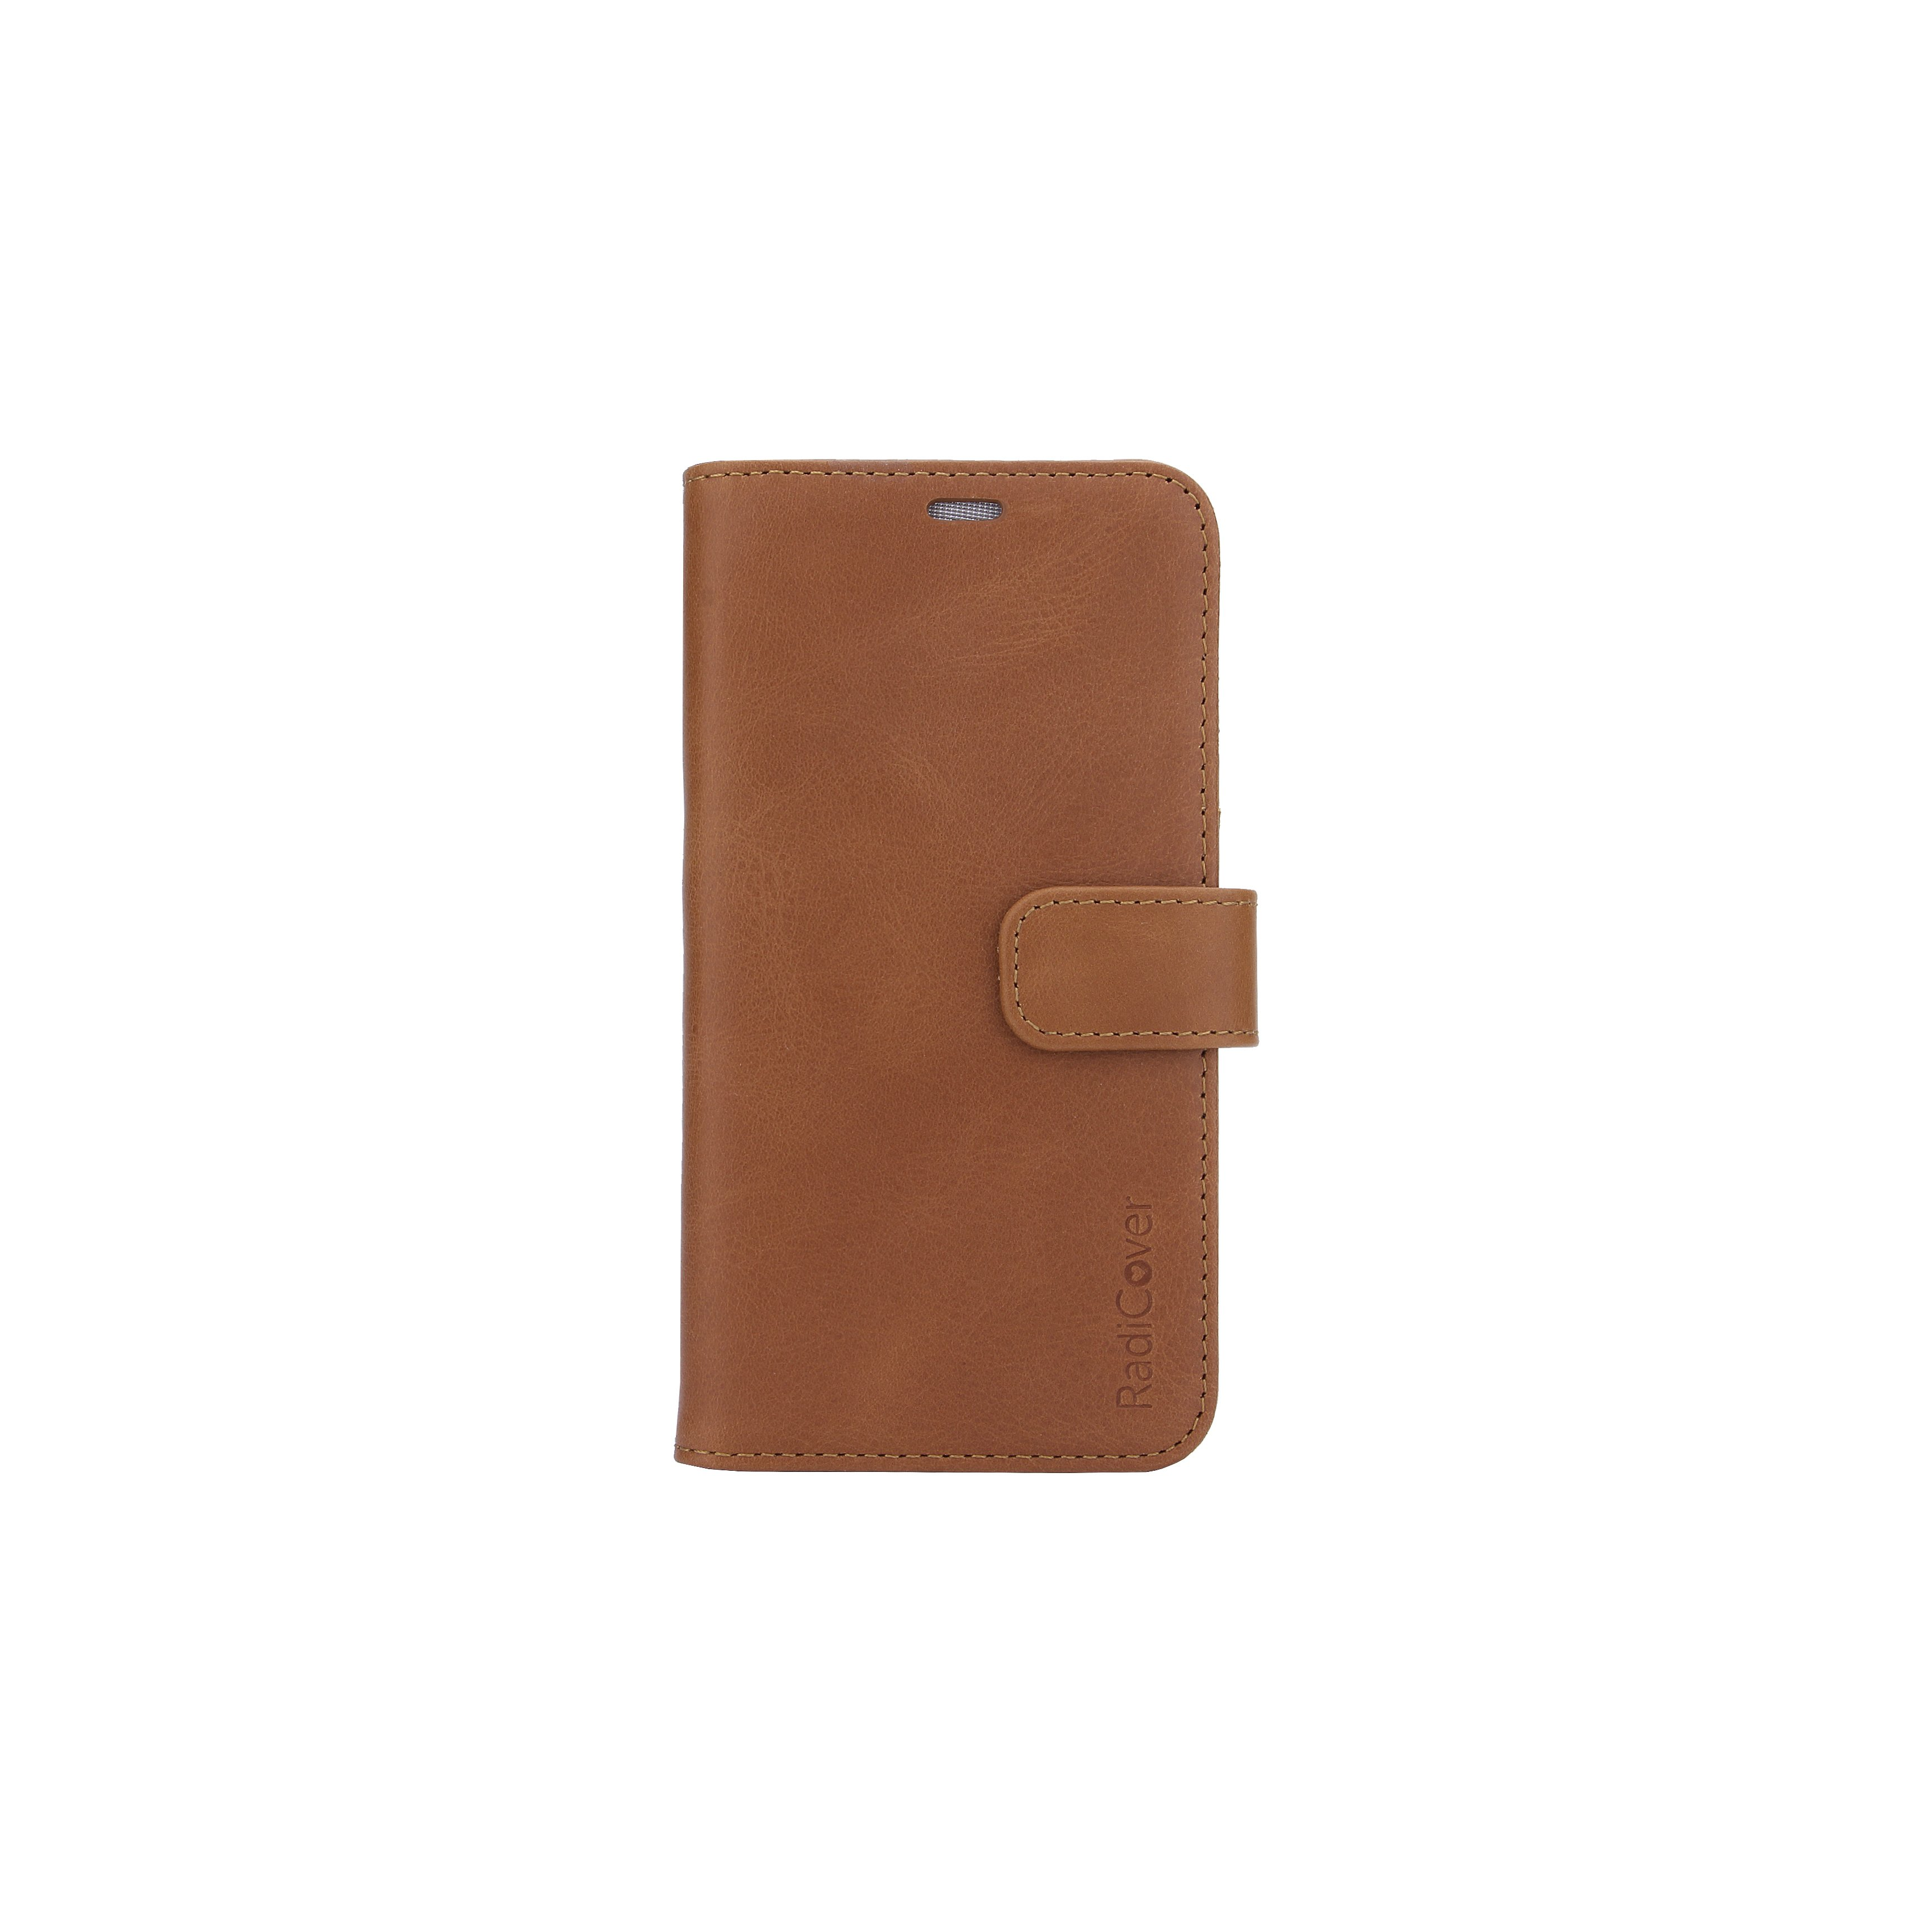 RadiCover - Radiationprotected Mobilewallet Leather iPhone 11 Pro 2in1 Magnetskal - Brown